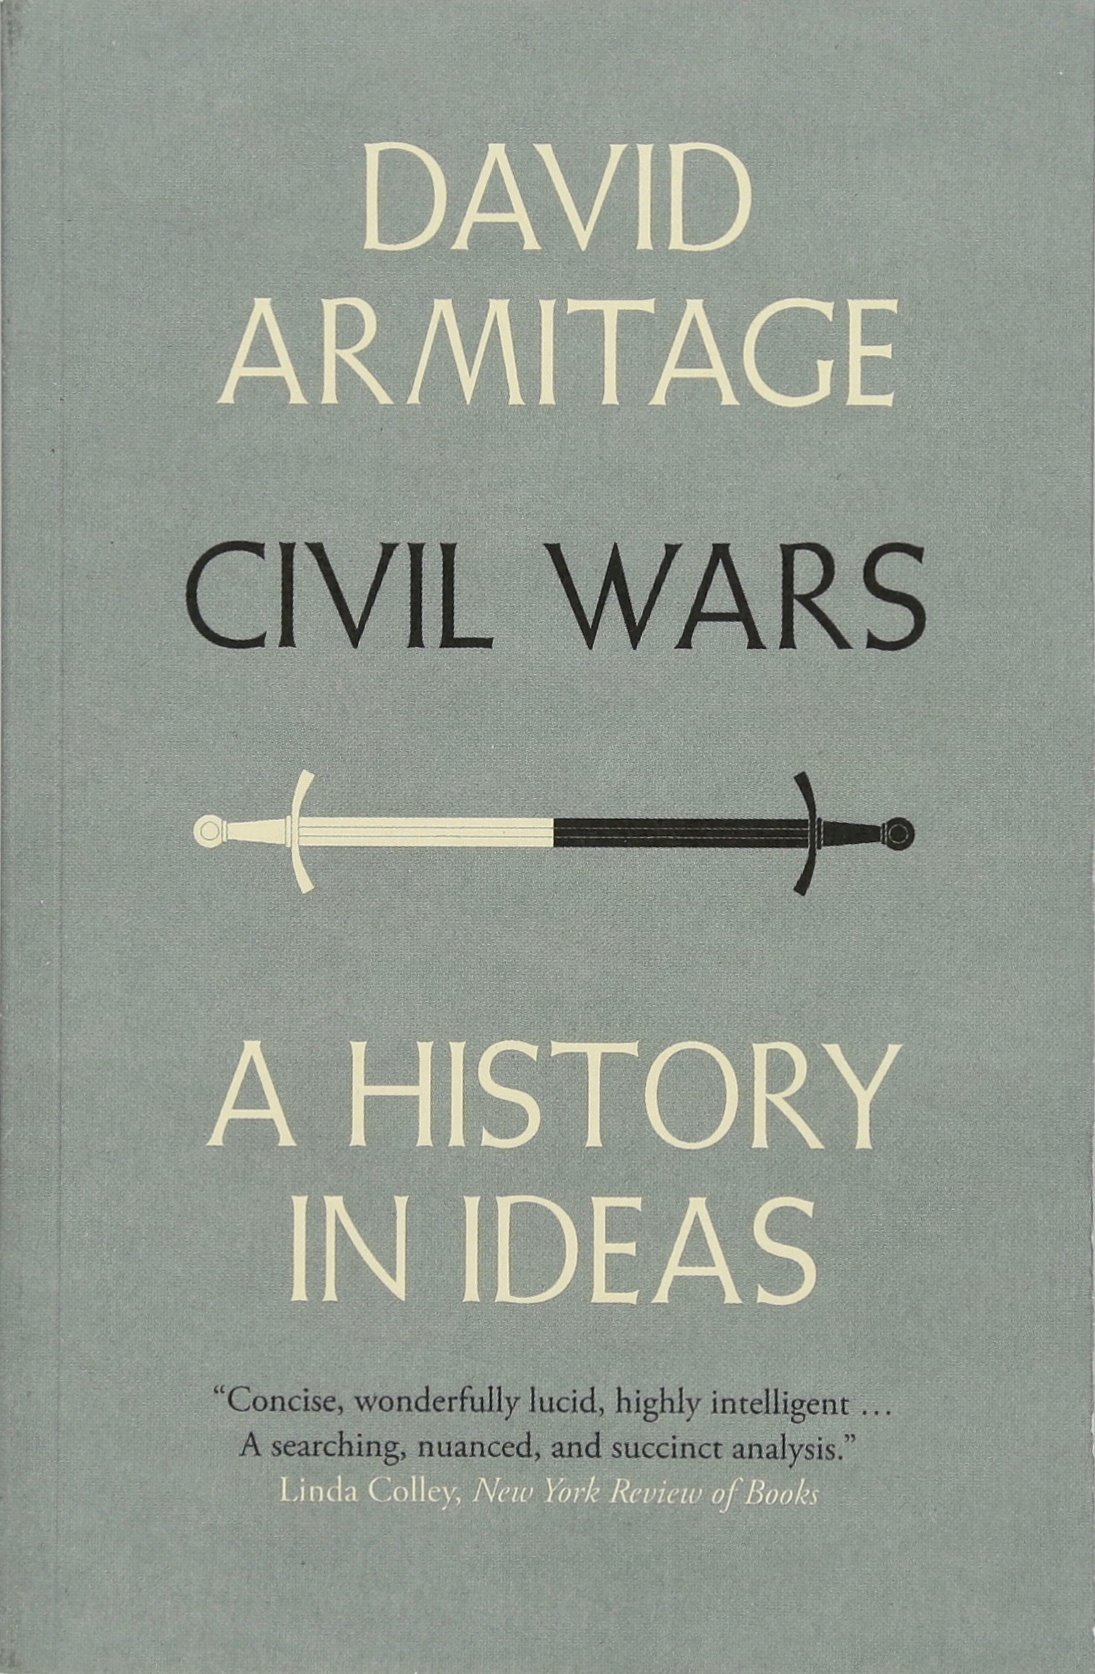 CIVIL WARS - David Armitage